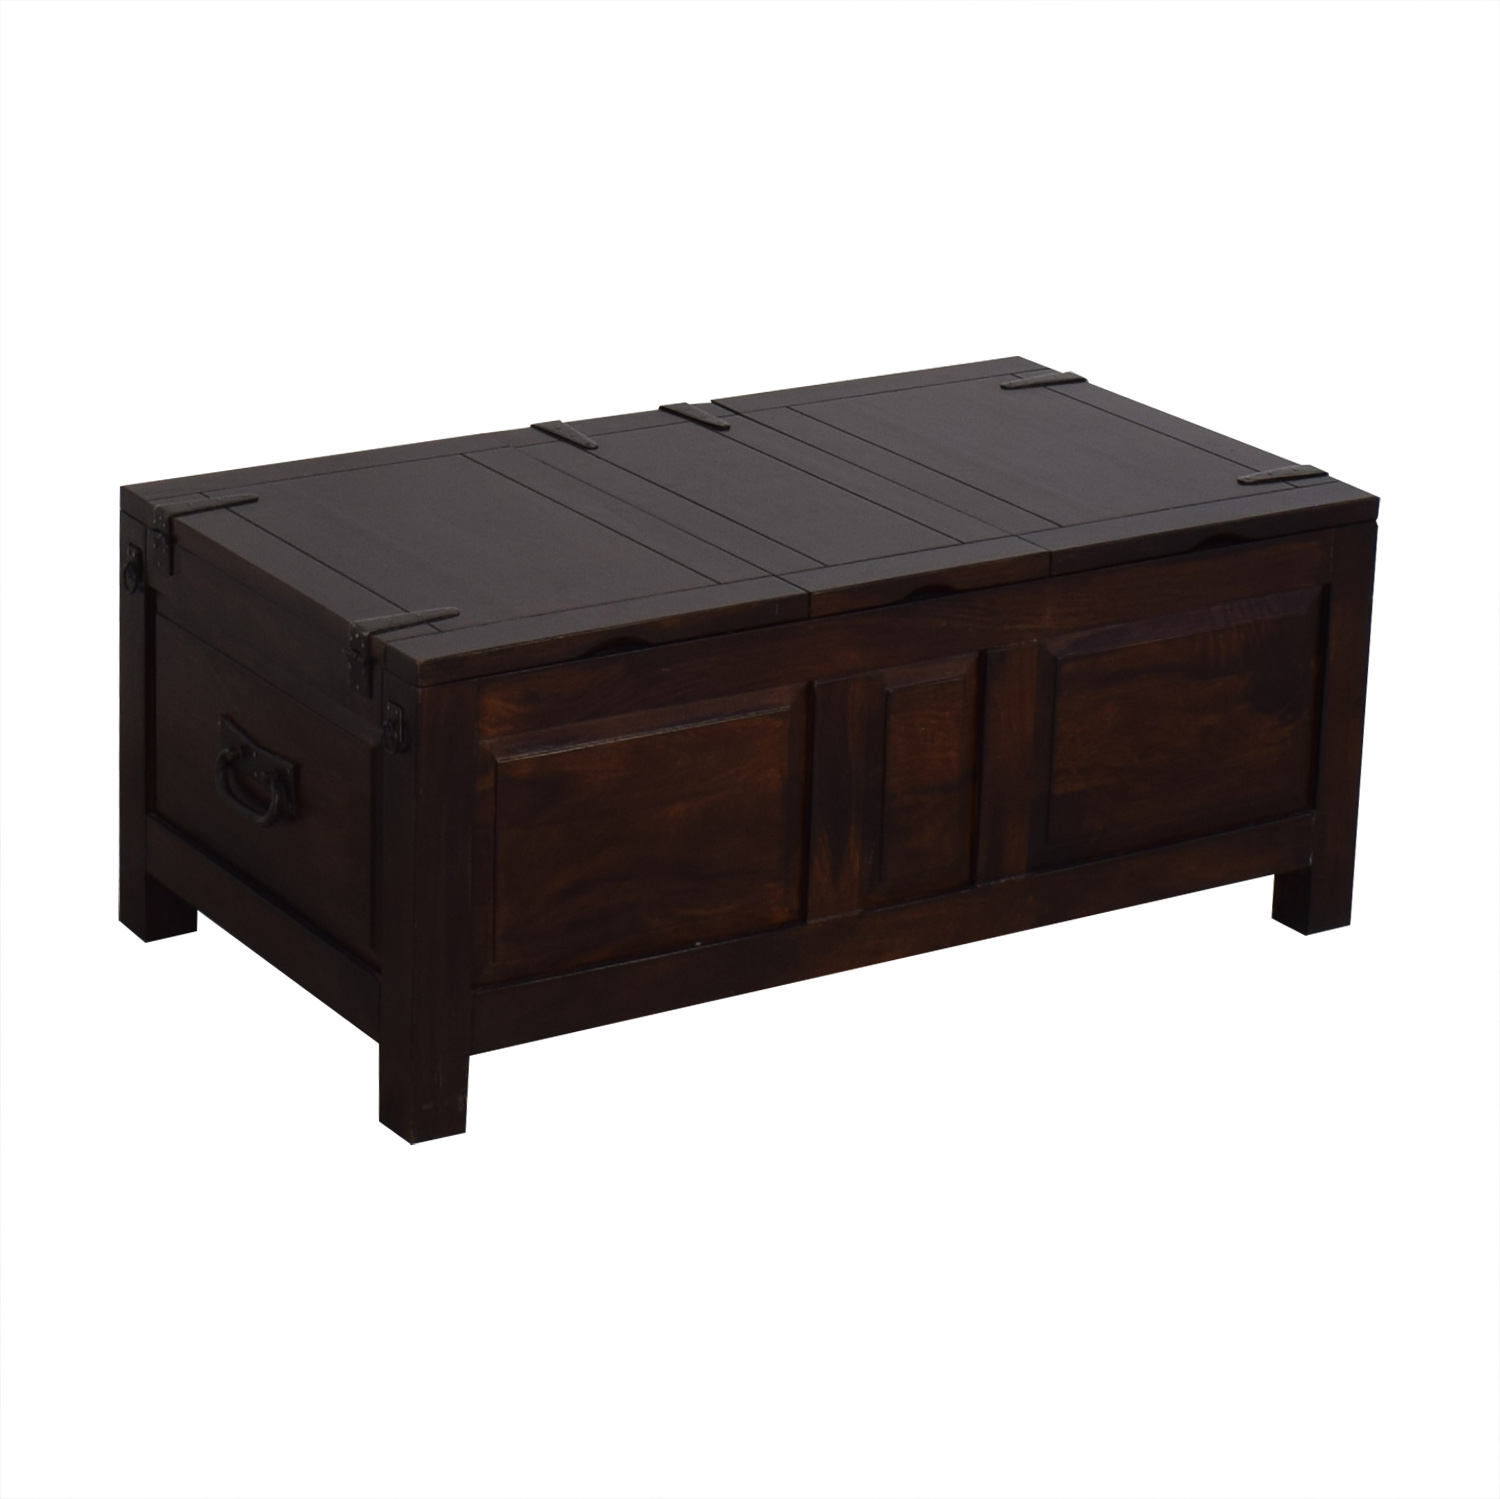 Crate and Barrel Trunk Table / Storage